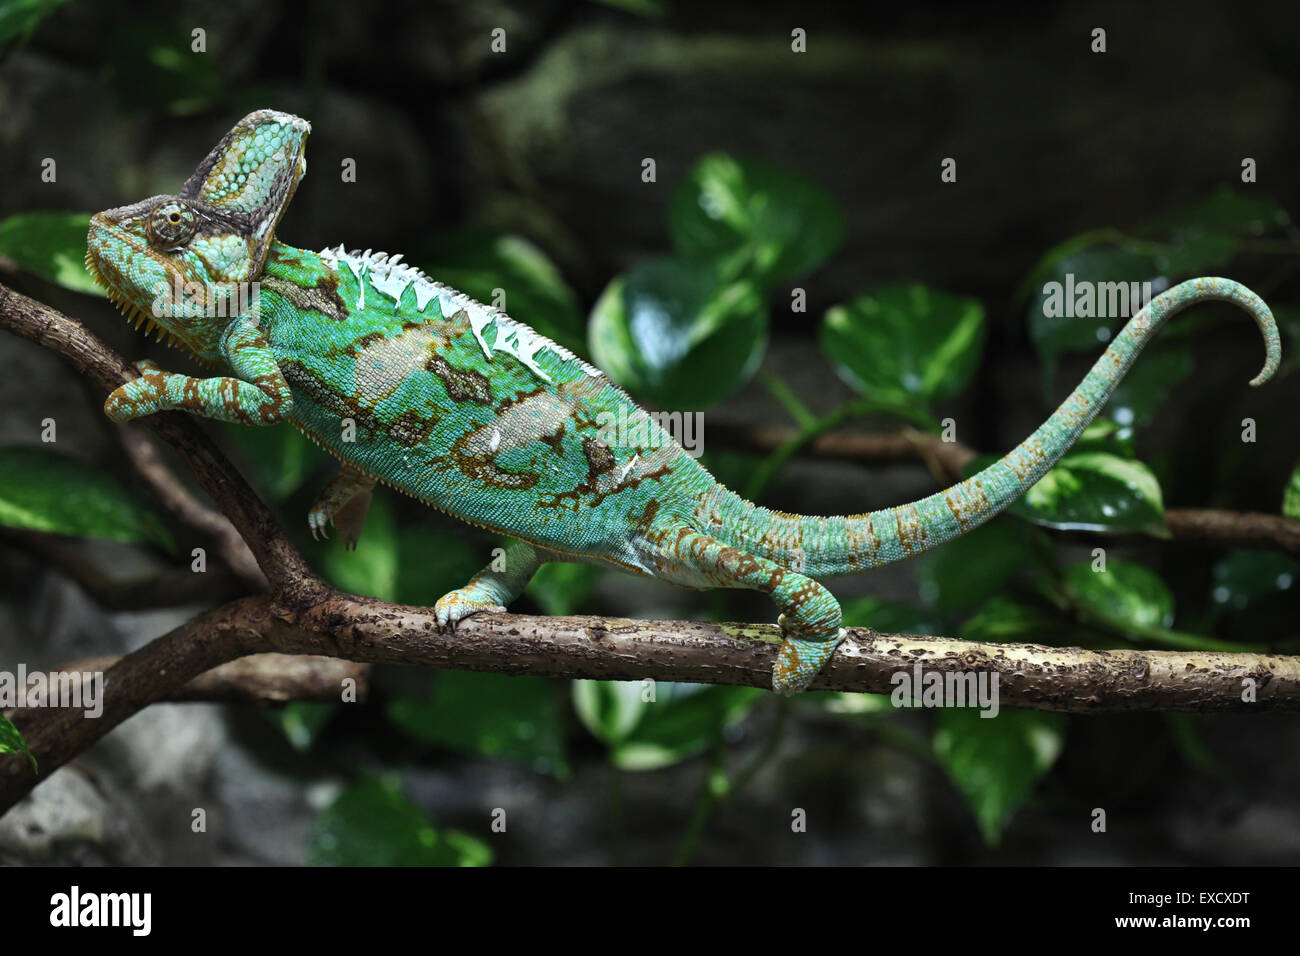 Veiled chameleon (Chamaeleo calyptratus), also known as the Yemen chameleon at Liberec Zoo in North Bohemia, Czech - Stock Image